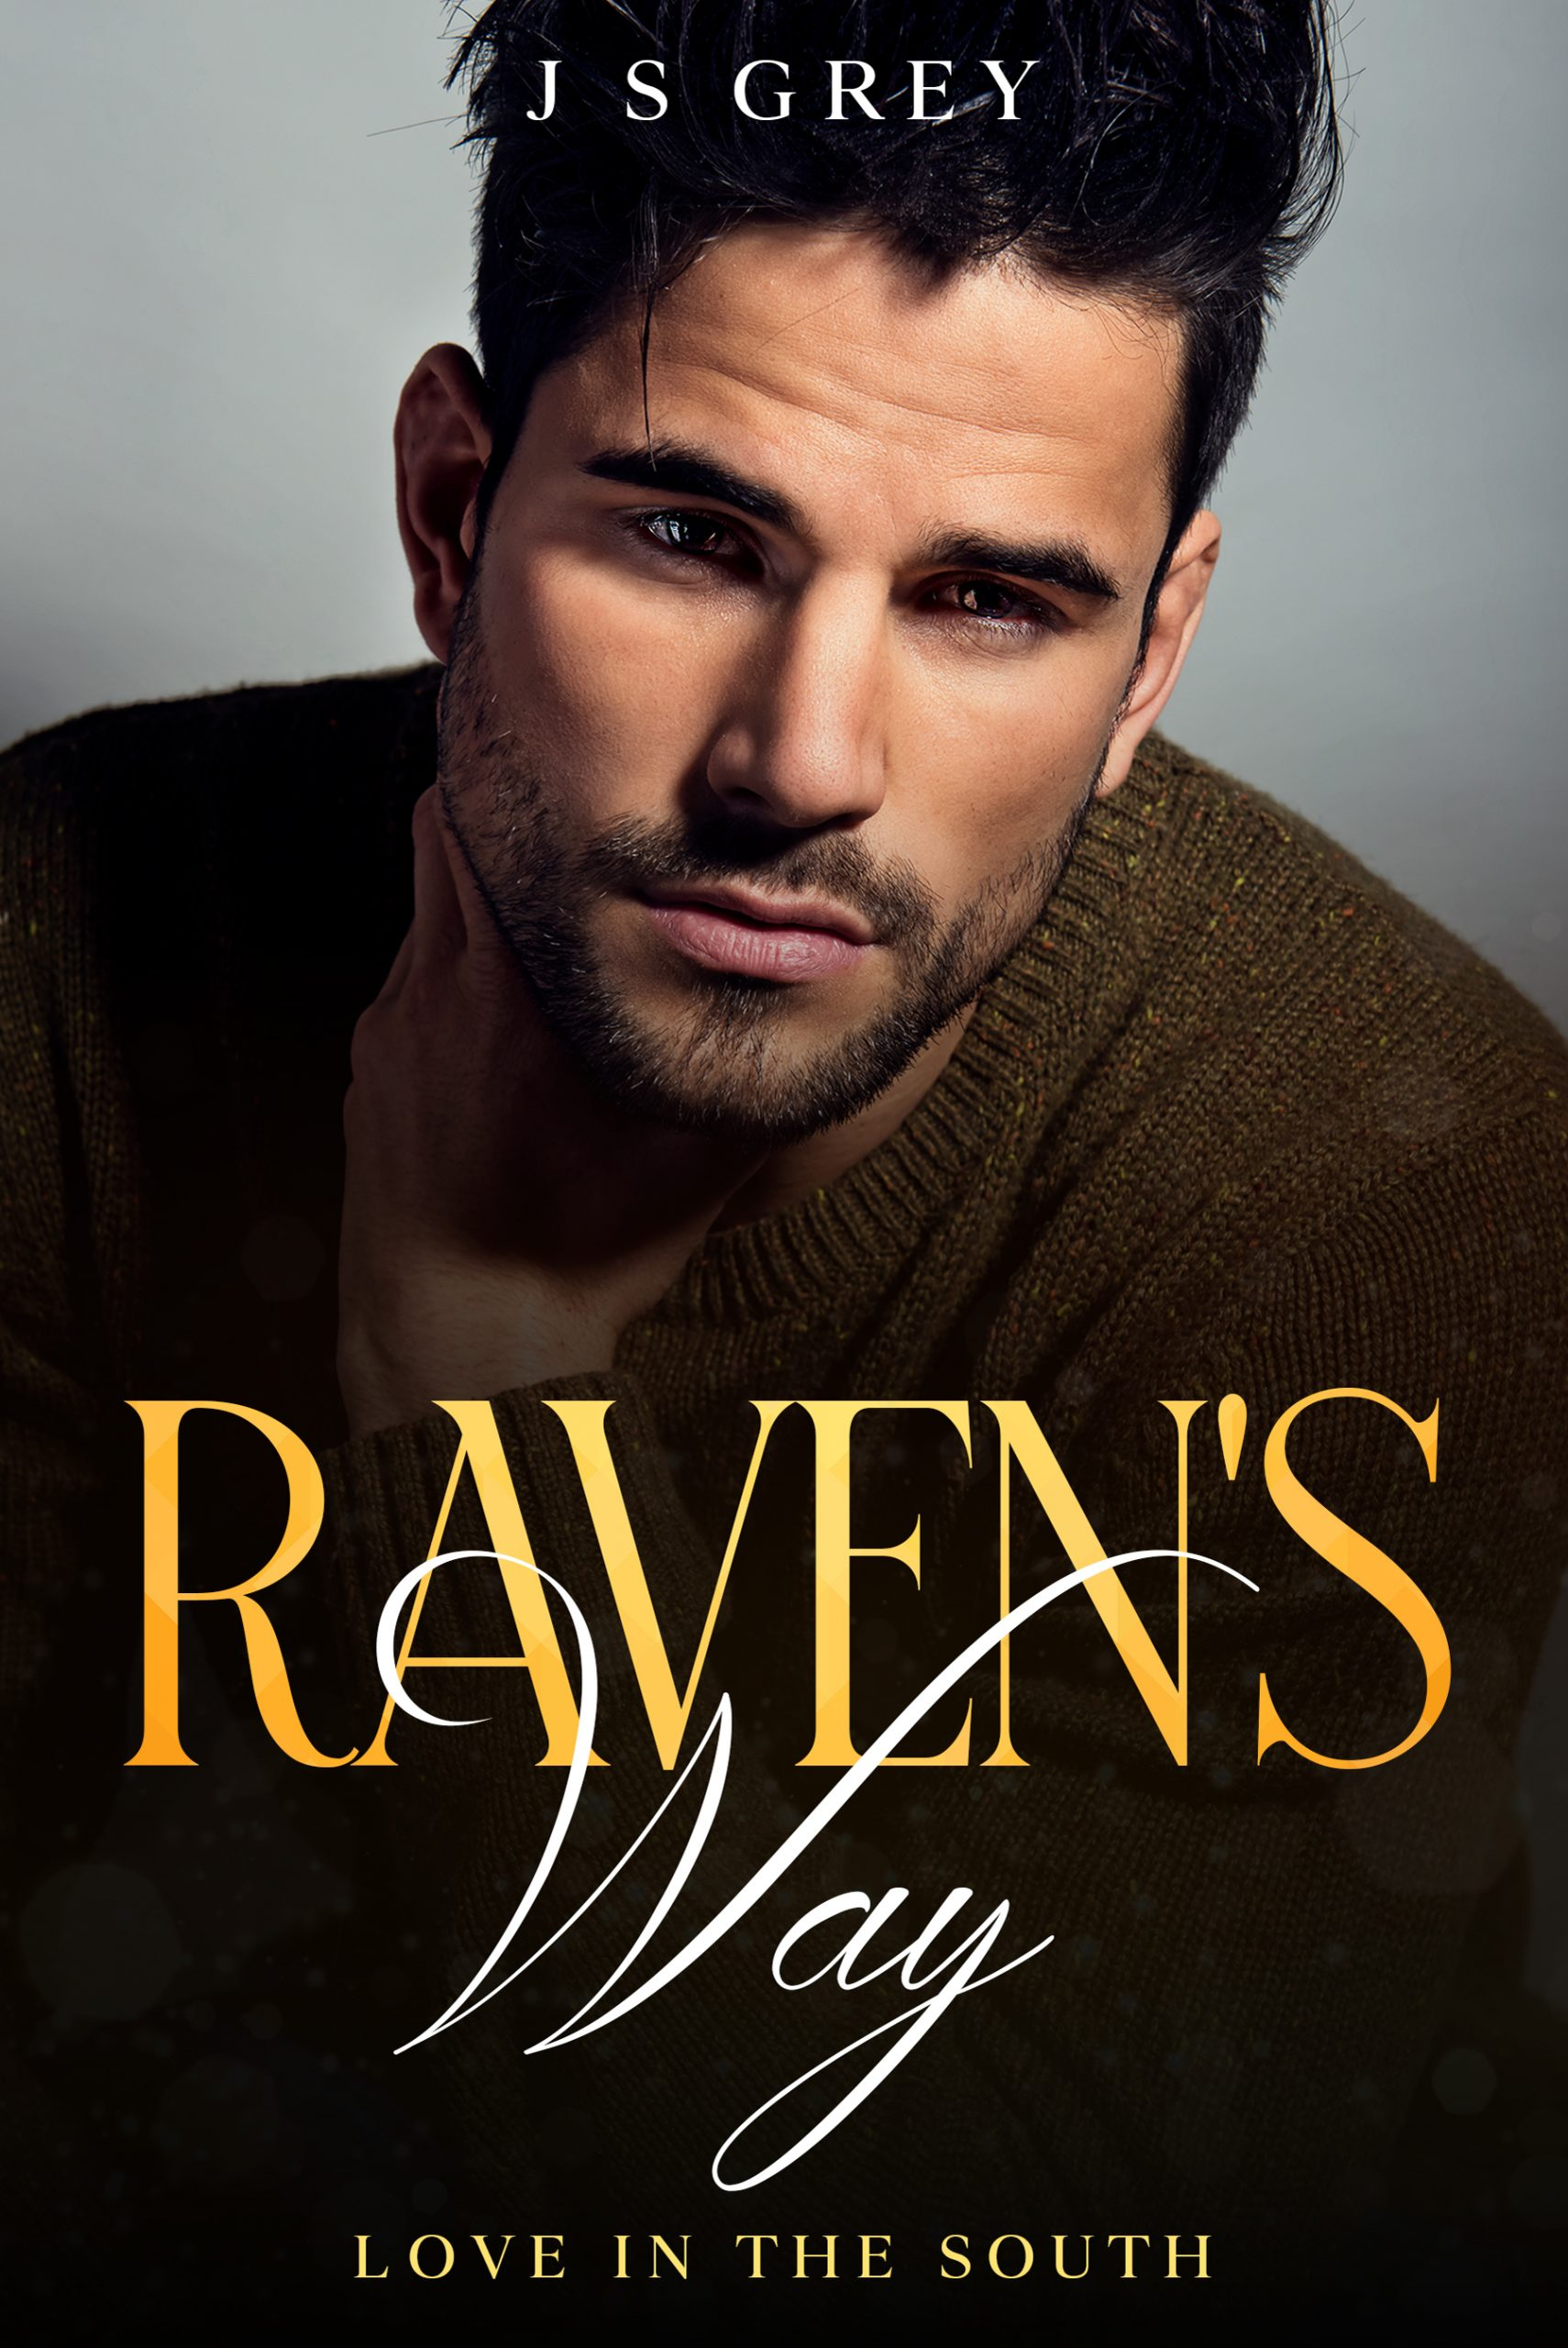 hot sexy gay guy fit broody mysterious novel